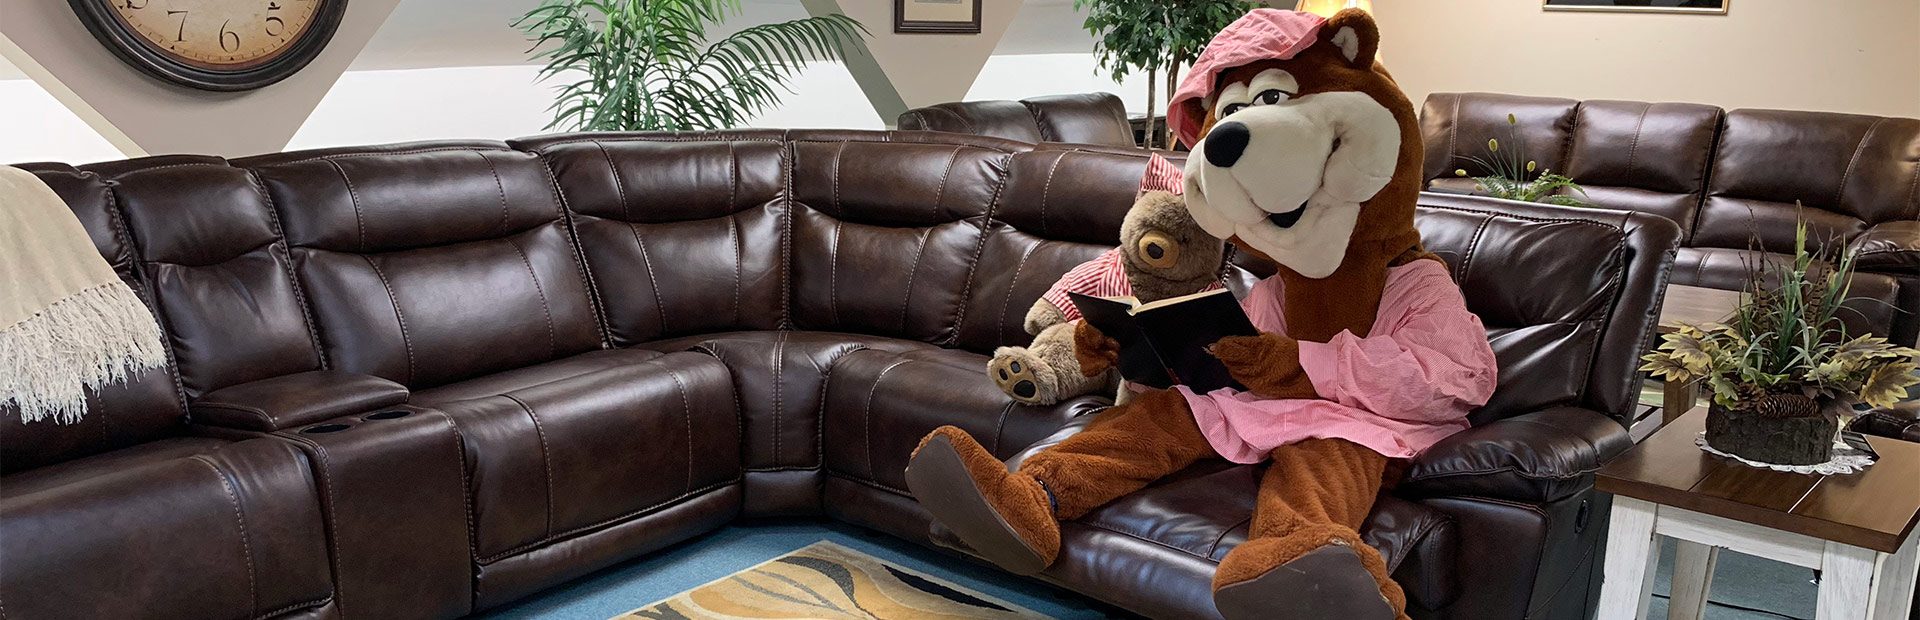 Furniture Living Room Tuffy Bear Discount Furniture Bangor Furniture Store Living Room